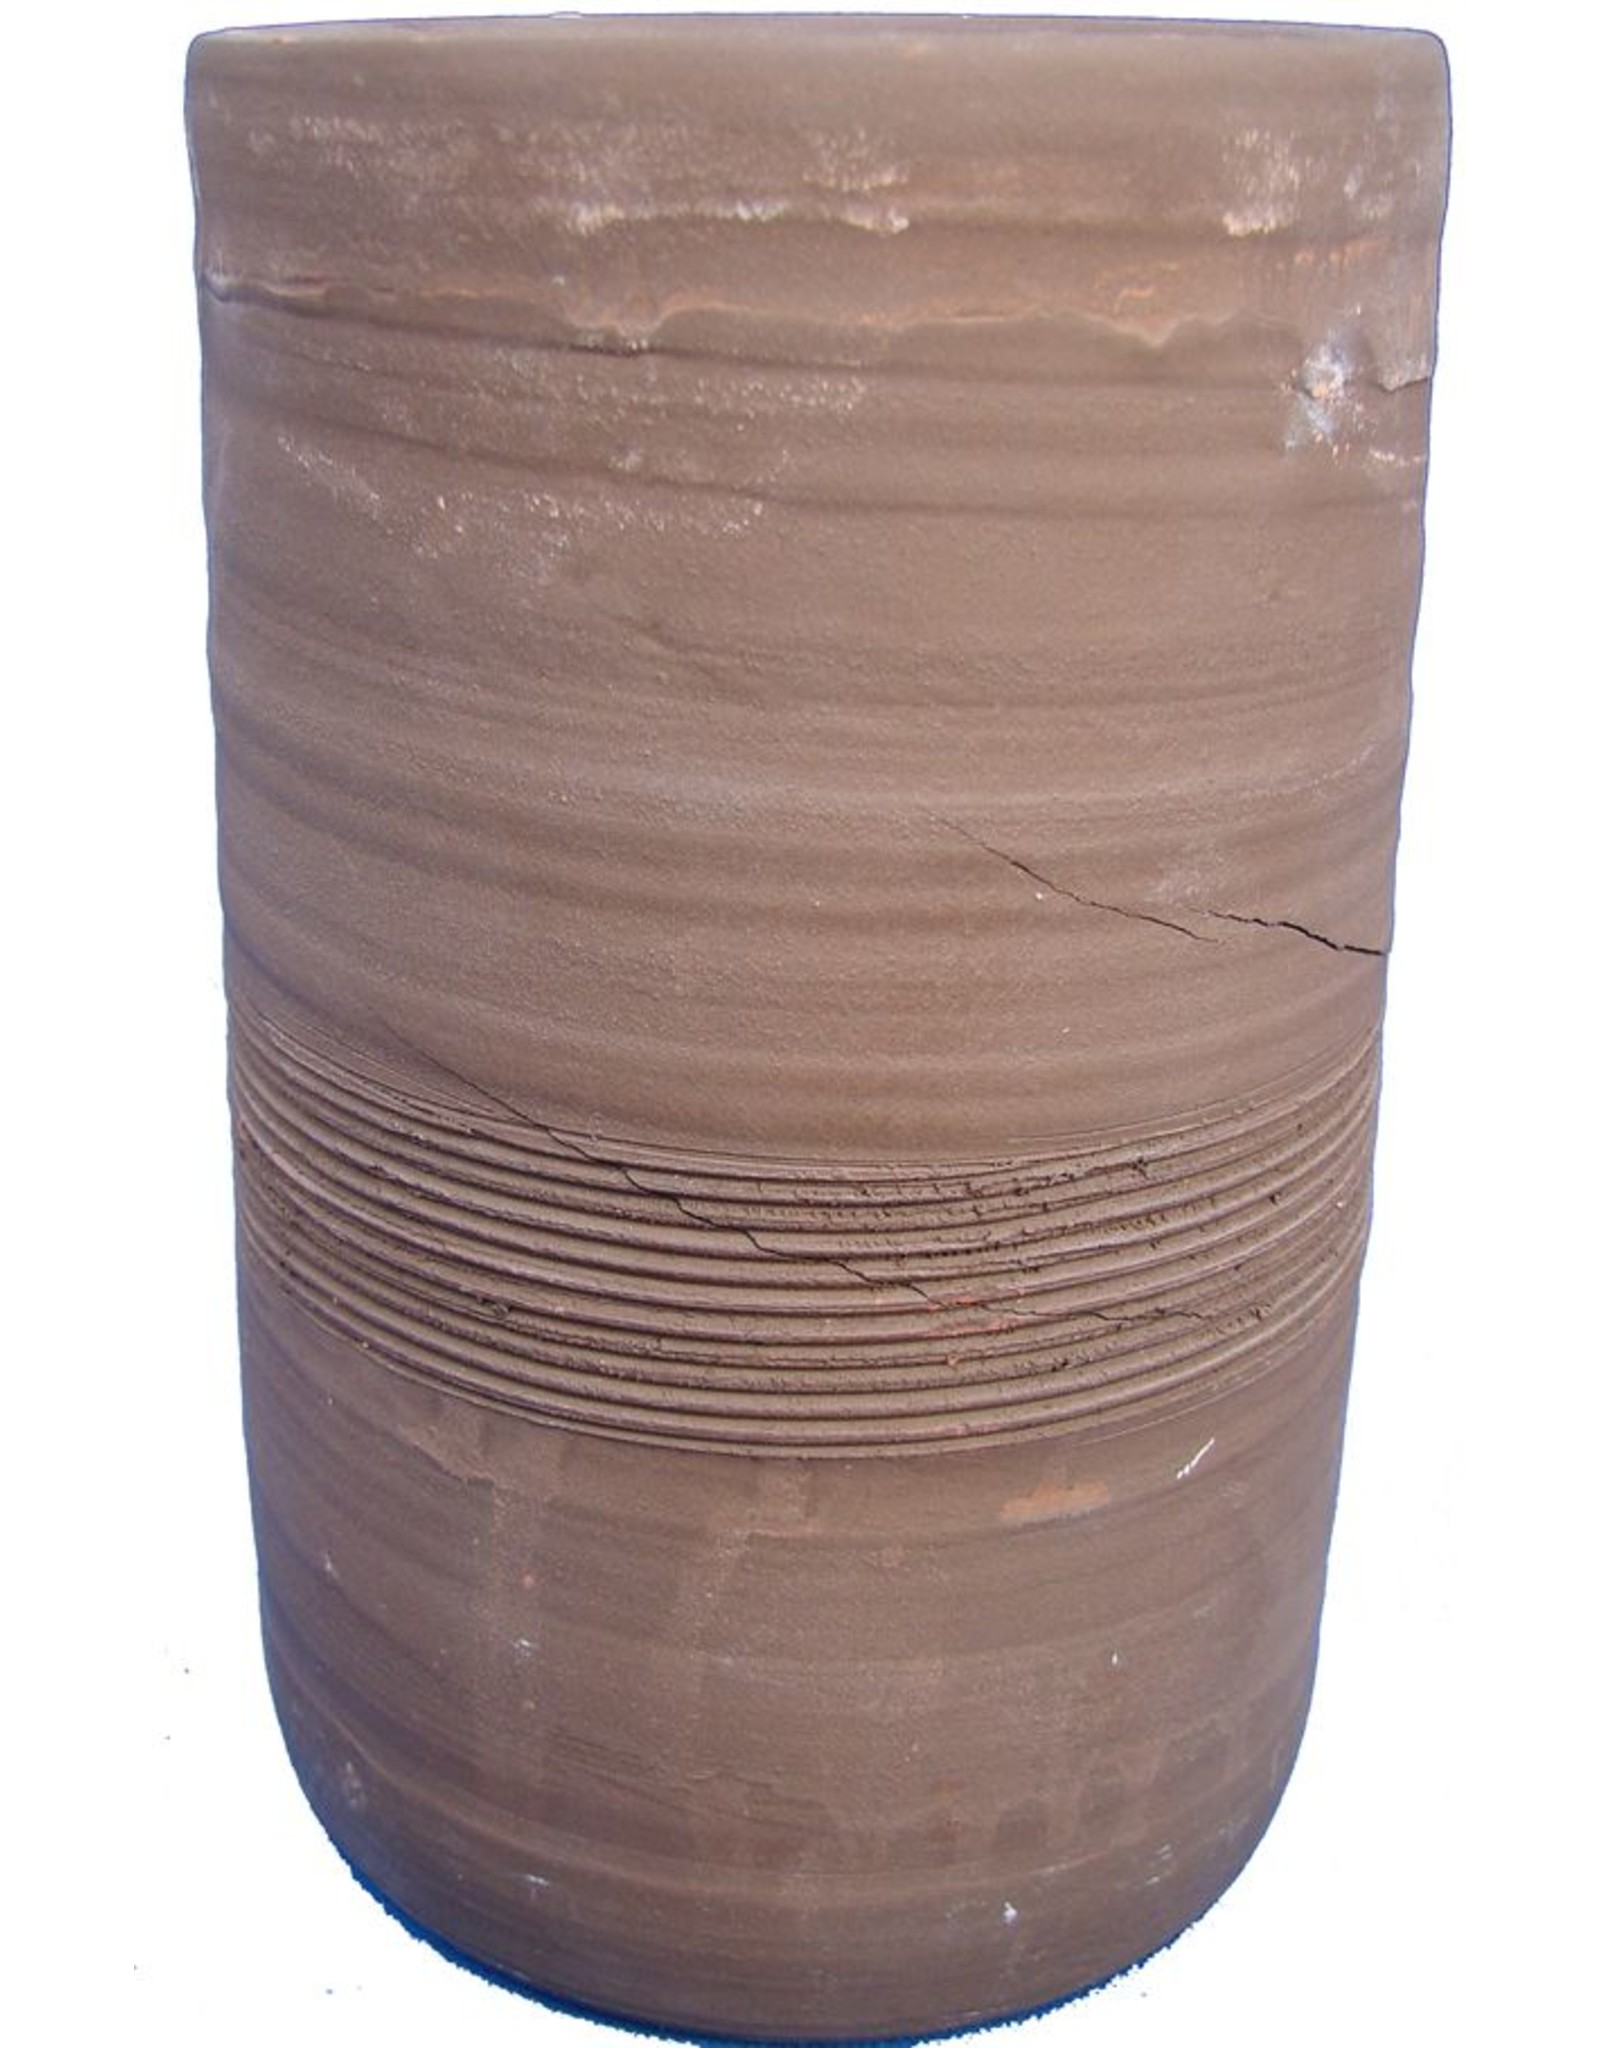 Potclays 1130 Chocolate Black (Firing Range 1040˚C-1150˚C) - 12.5kg